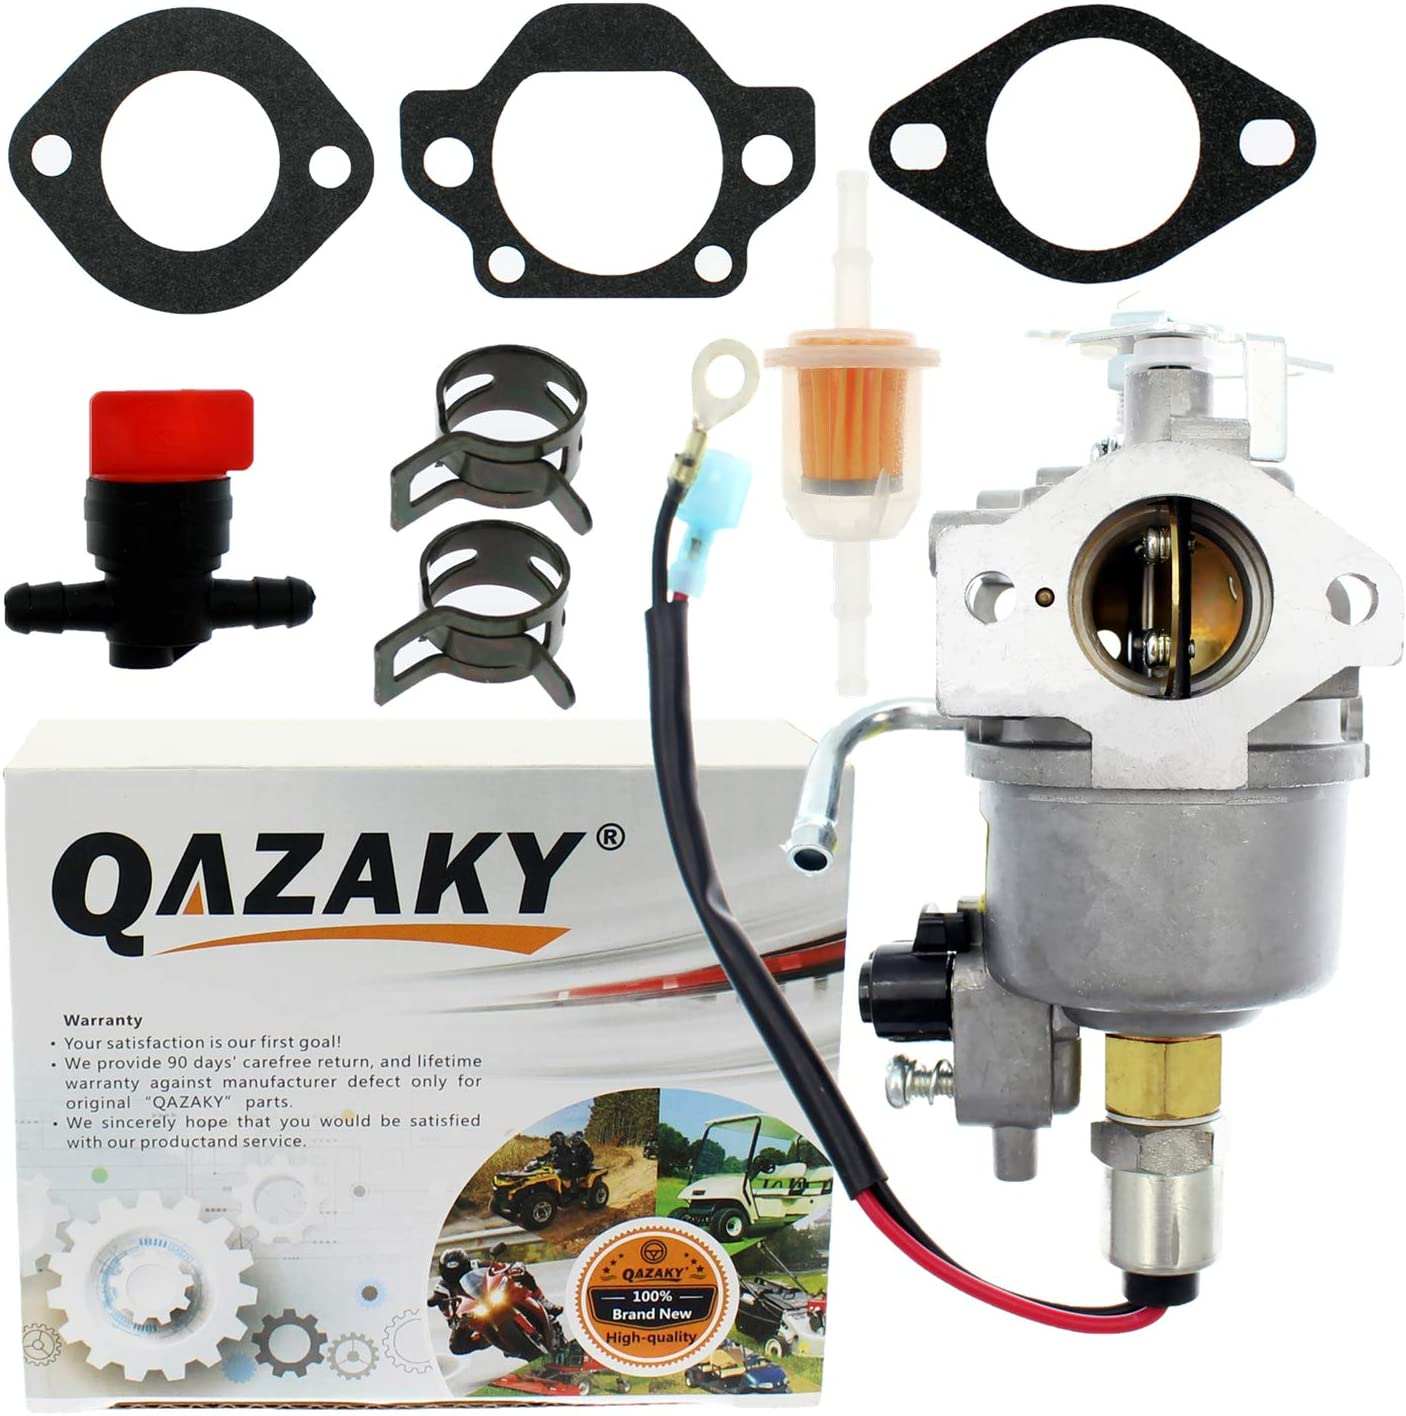 1460803 1460785 Generators Carb-Carburetor for Onan Cummins A041D736 Microquiet 4000-Watt 4KYFA26100 4KYFA26100P 4KYFA26100K With Gaskets